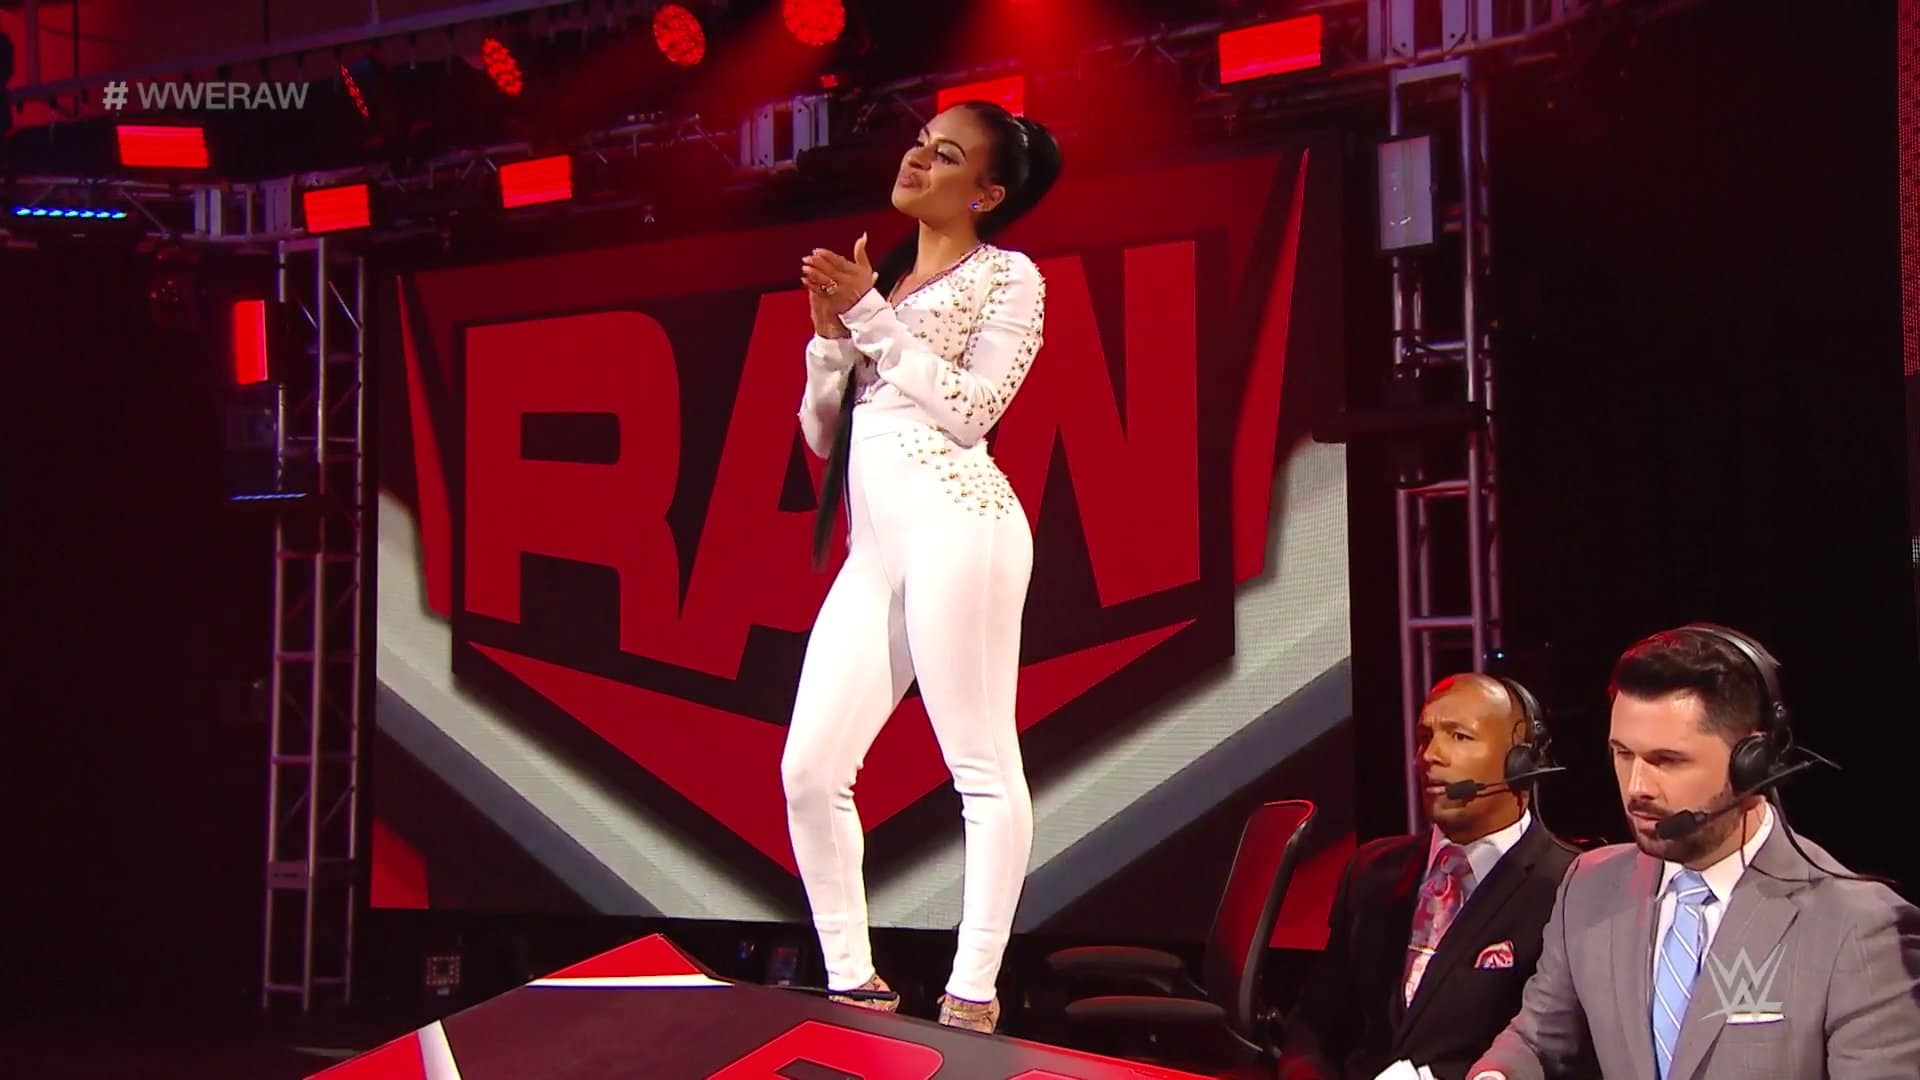 AEW President Tony Khan comments on Thea Trinidad's non-compete clause expiration